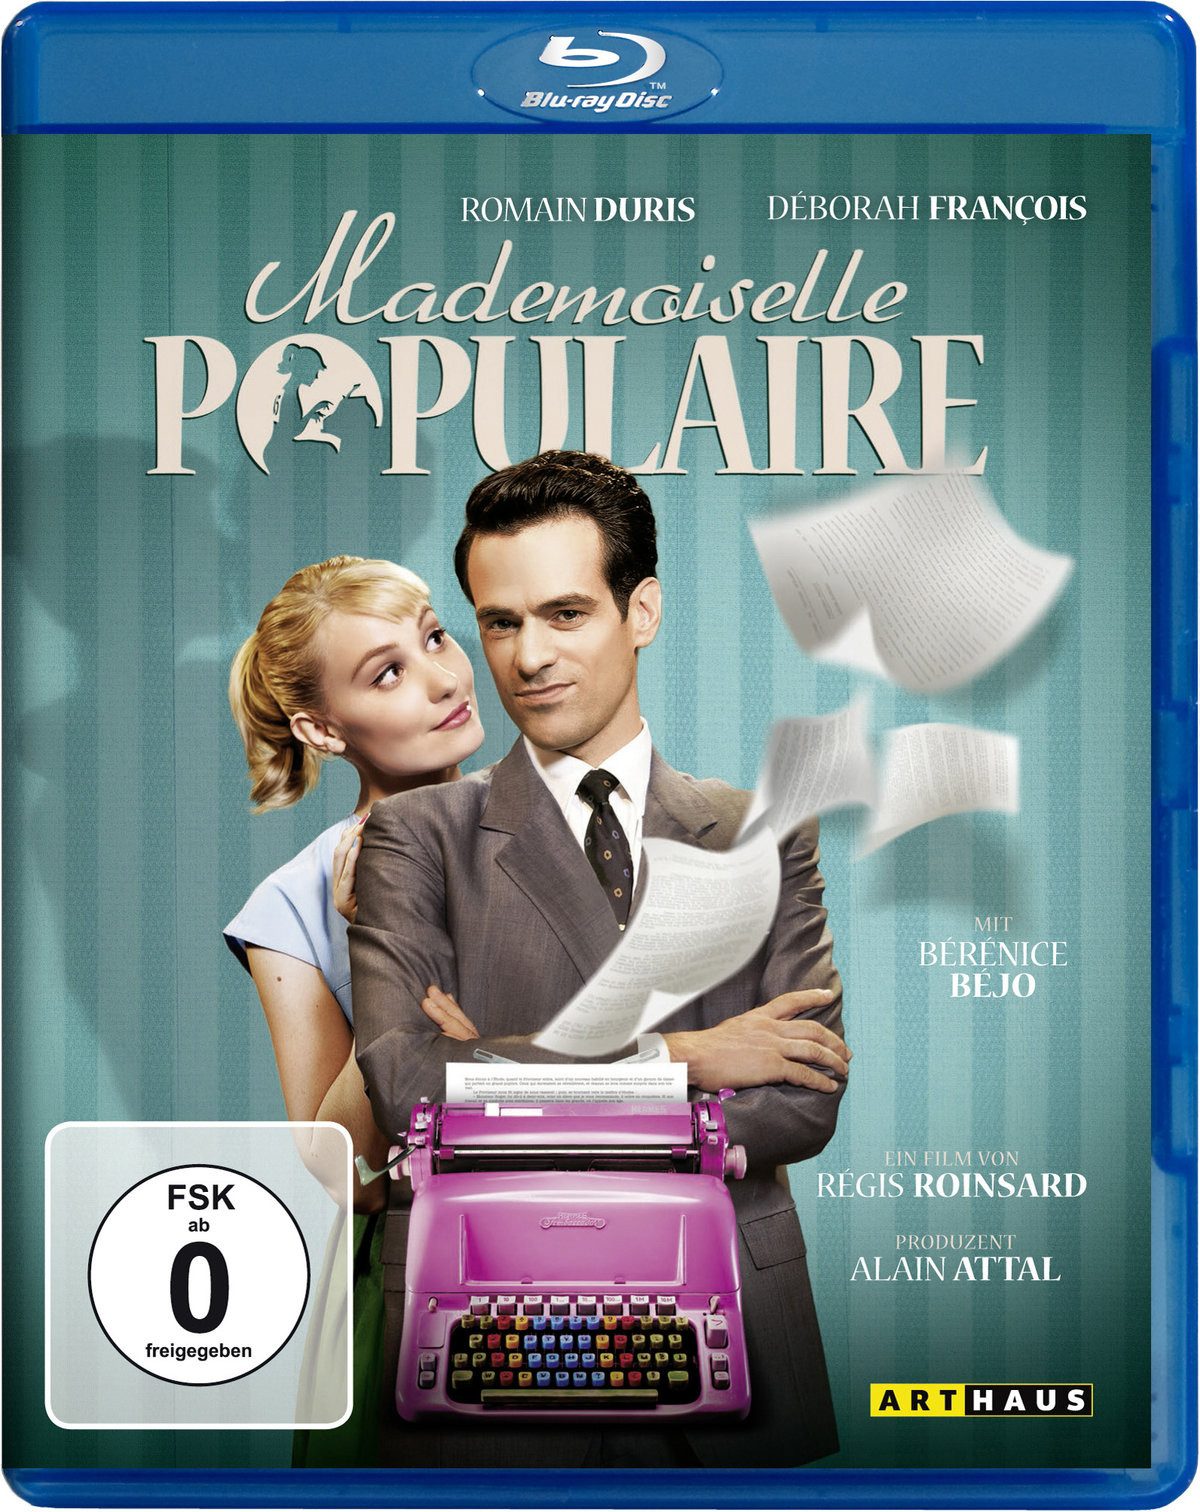 Mademoiselle Populaire (2012) - Populaire (2012)